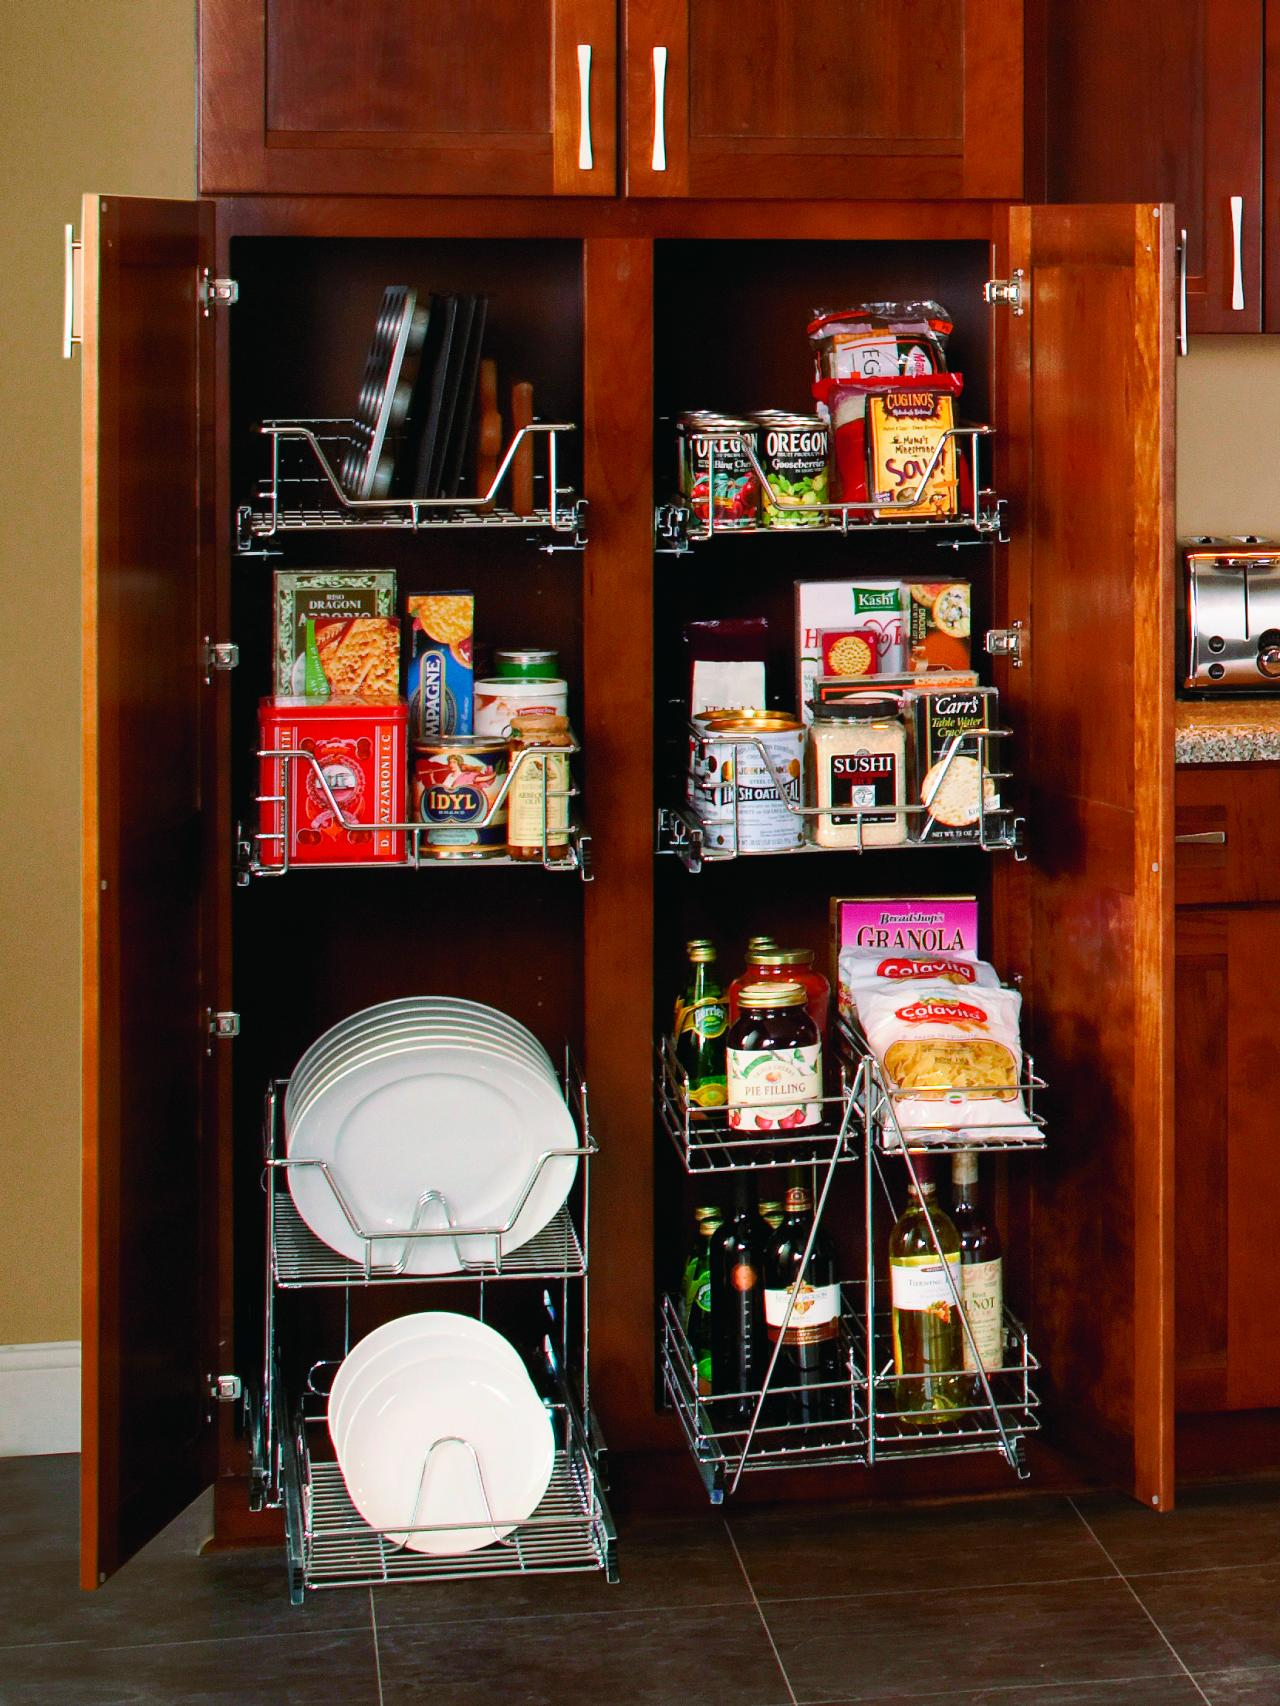 Pullout wire organizers grant easy access to food and dishes.